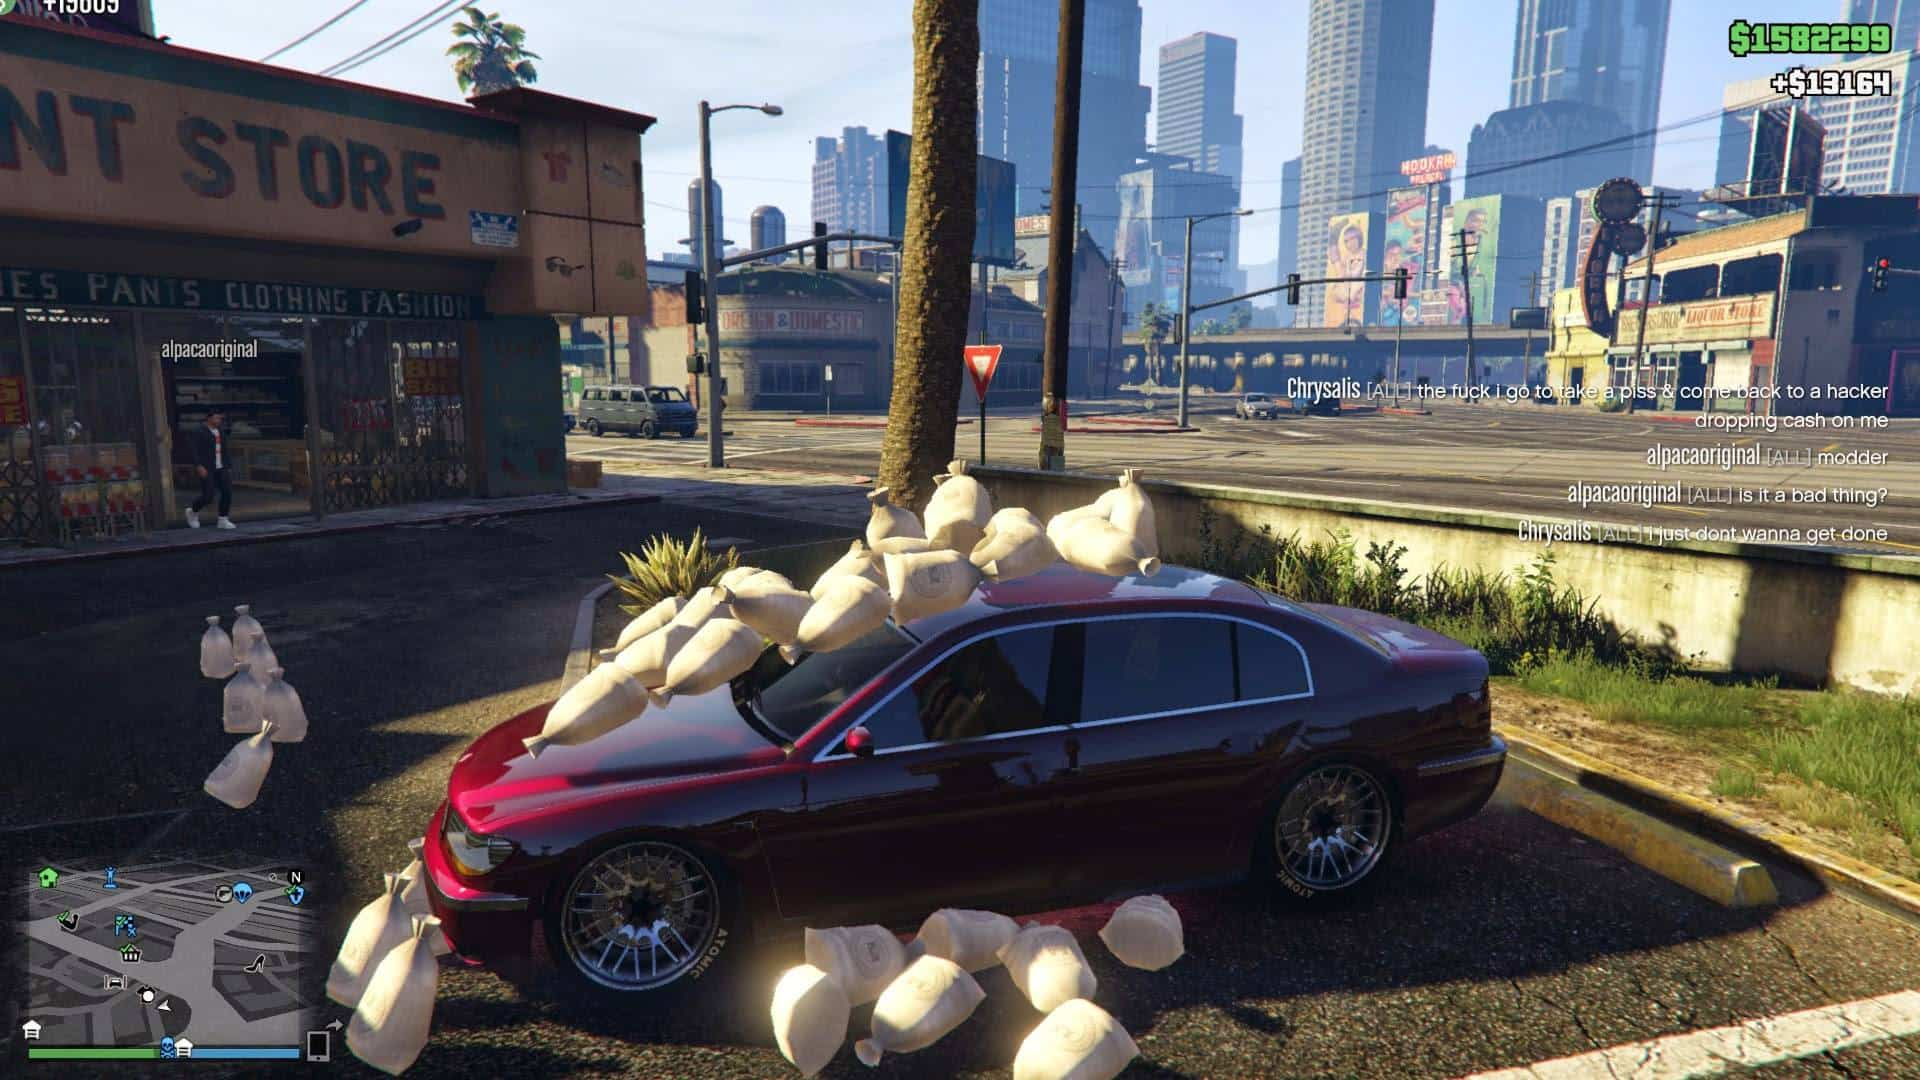 Buy now Grand Theft Auto 5 Online NEW STEAM ACCOUNT Region Free and